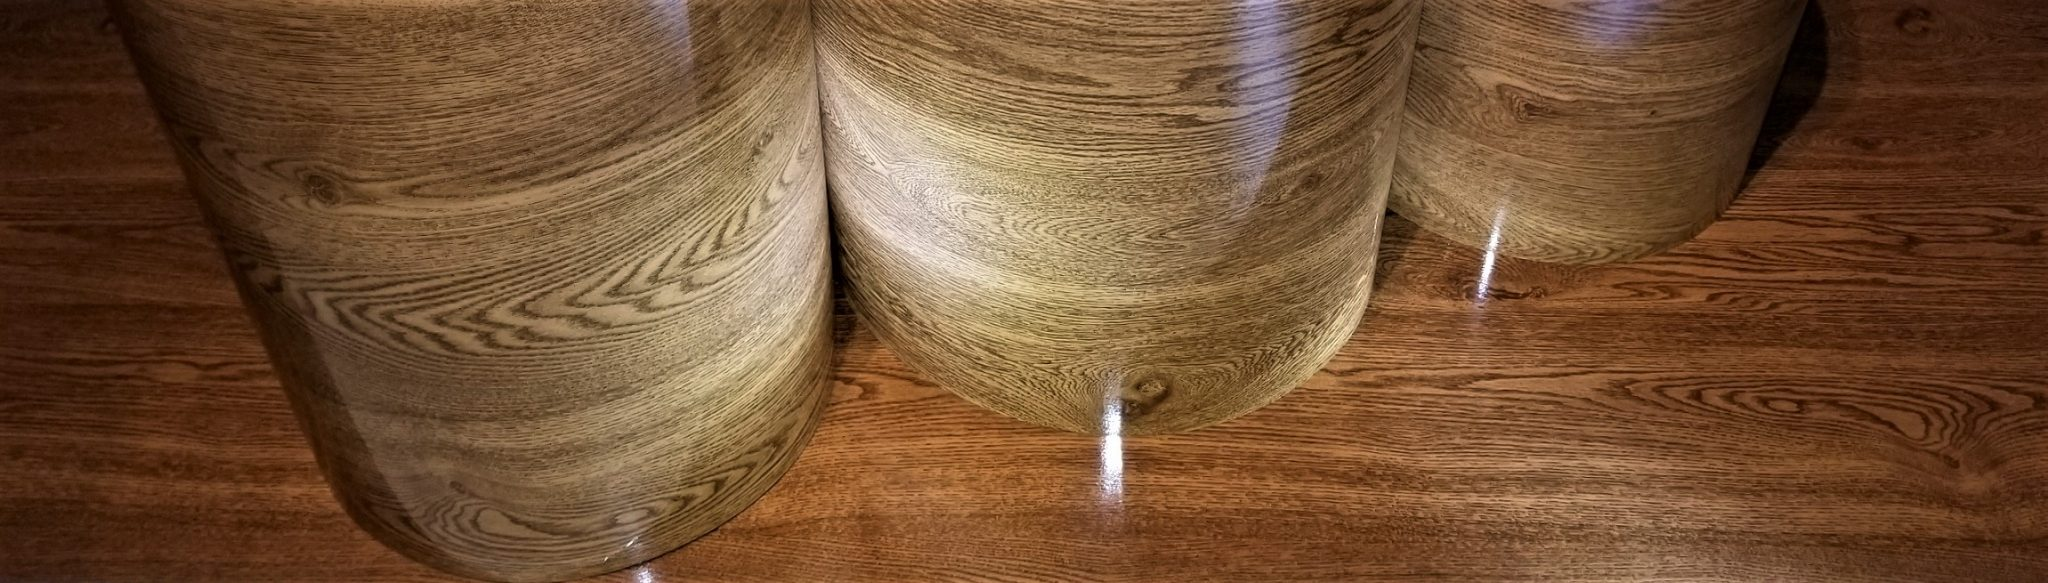 Golden Oak Wood Grain